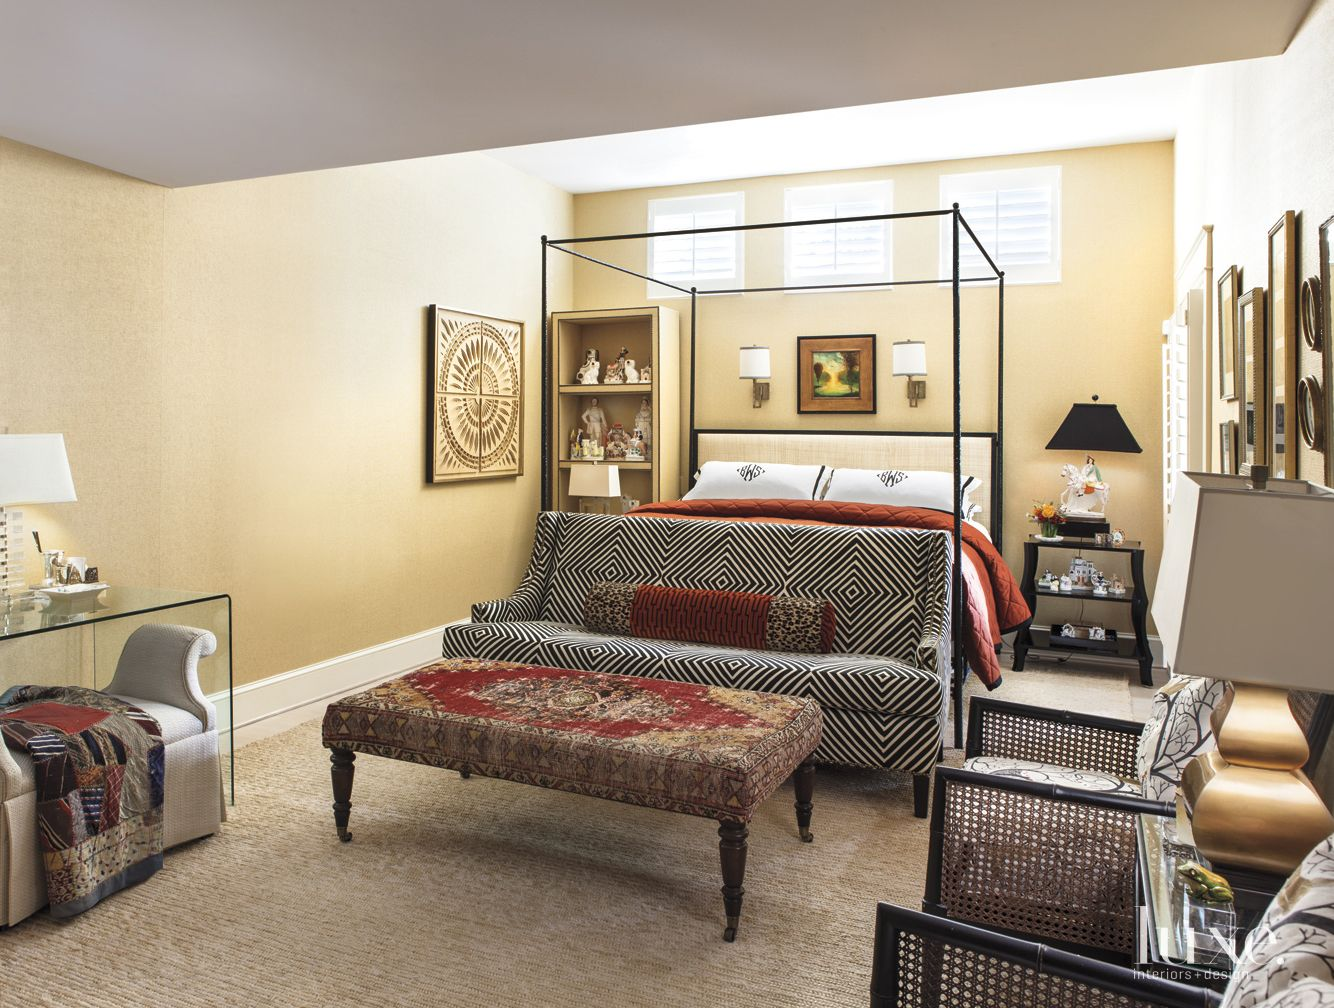 Eclectic Yellow Bedroom with Patterned Sofa